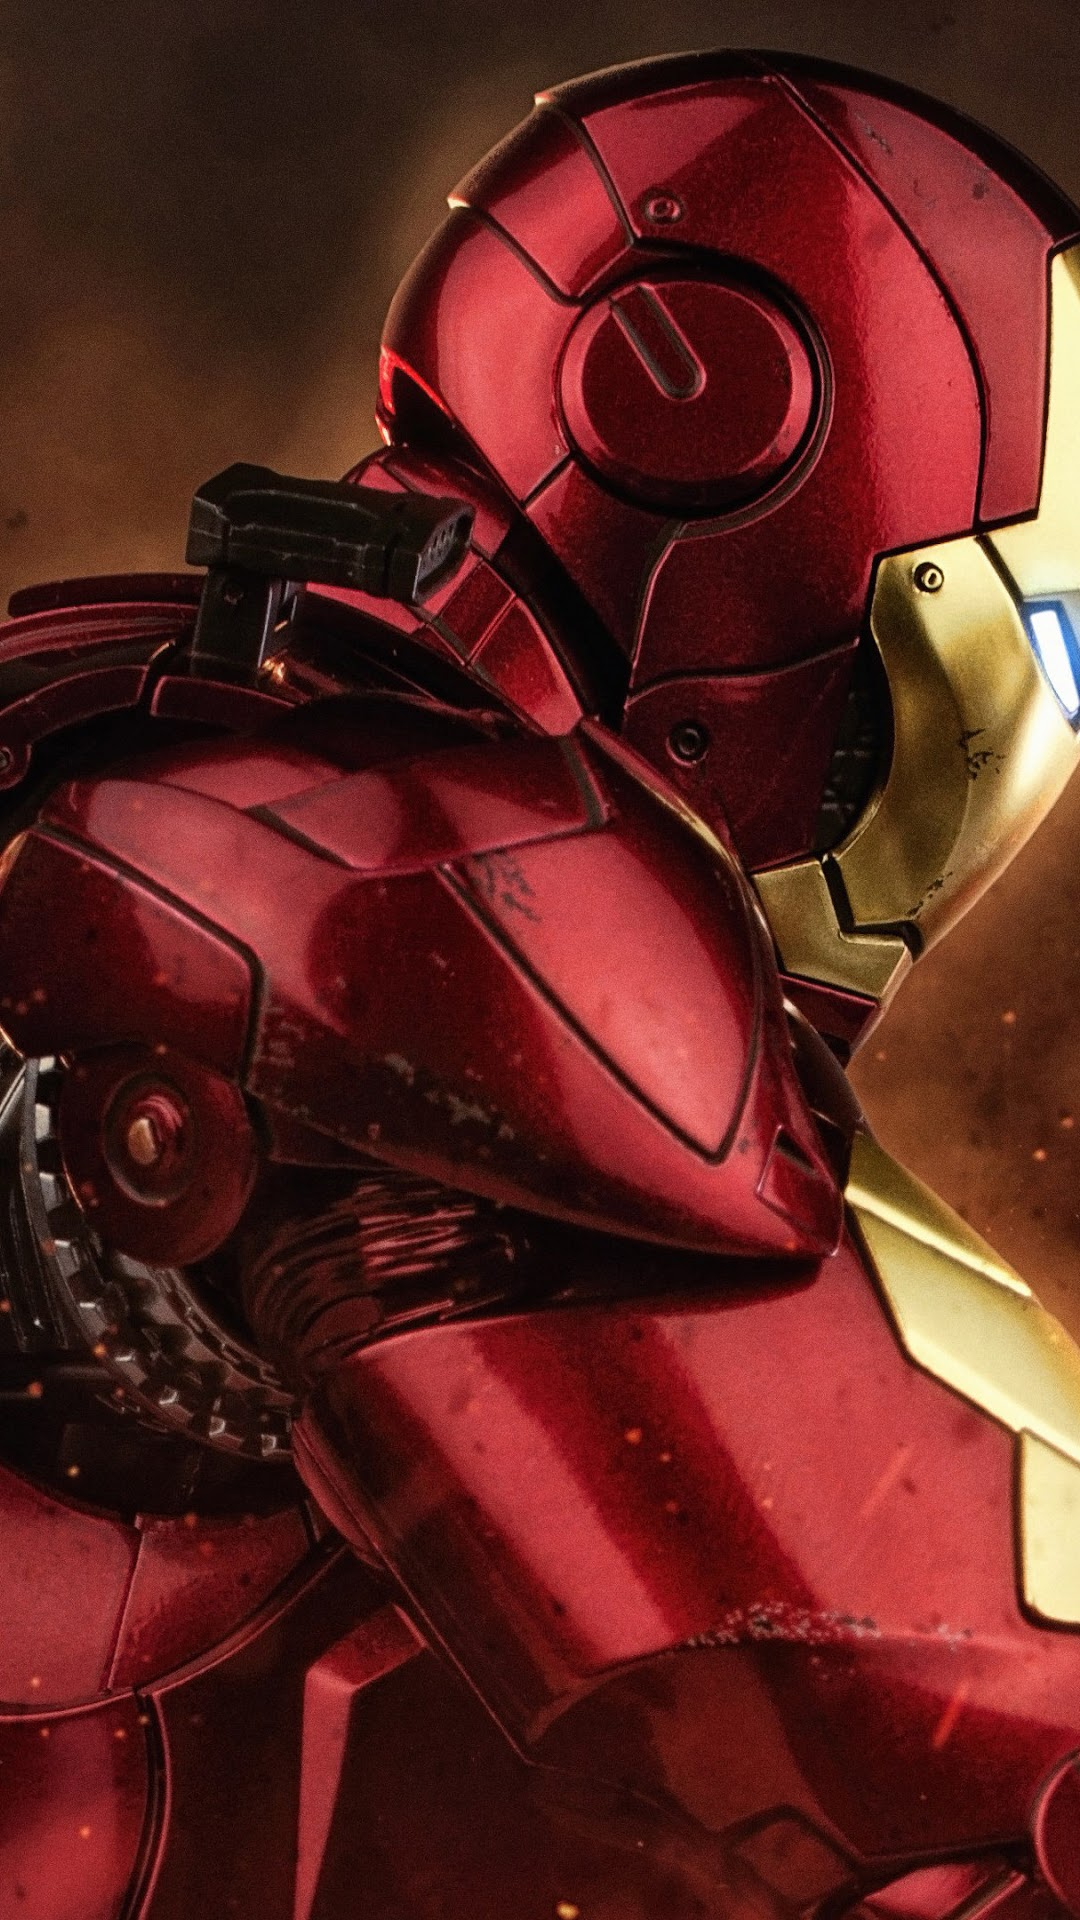 Iron Man Iphone 10,7,6s,6 Hd Wallpapers, Images, Backgrounds, - Iron Man Wallpaper Hero , HD Wallpaper & Backgrounds